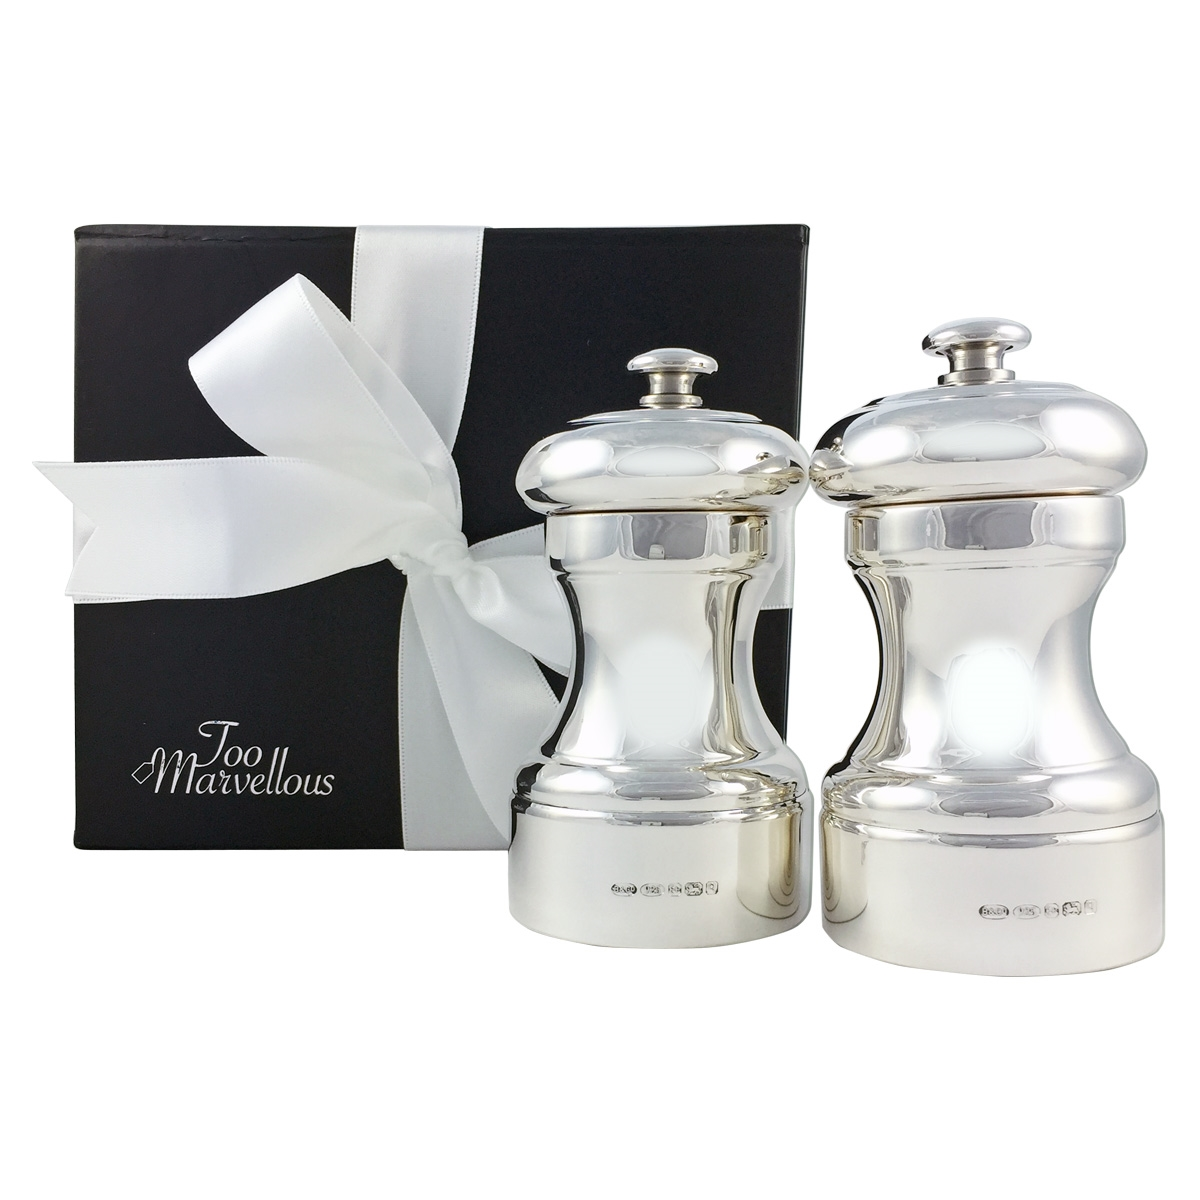 sterling silver salt  pepper mill with peugeot mechanism - hallmarked sterling silver salt  pepper mill with peugeot mechanism